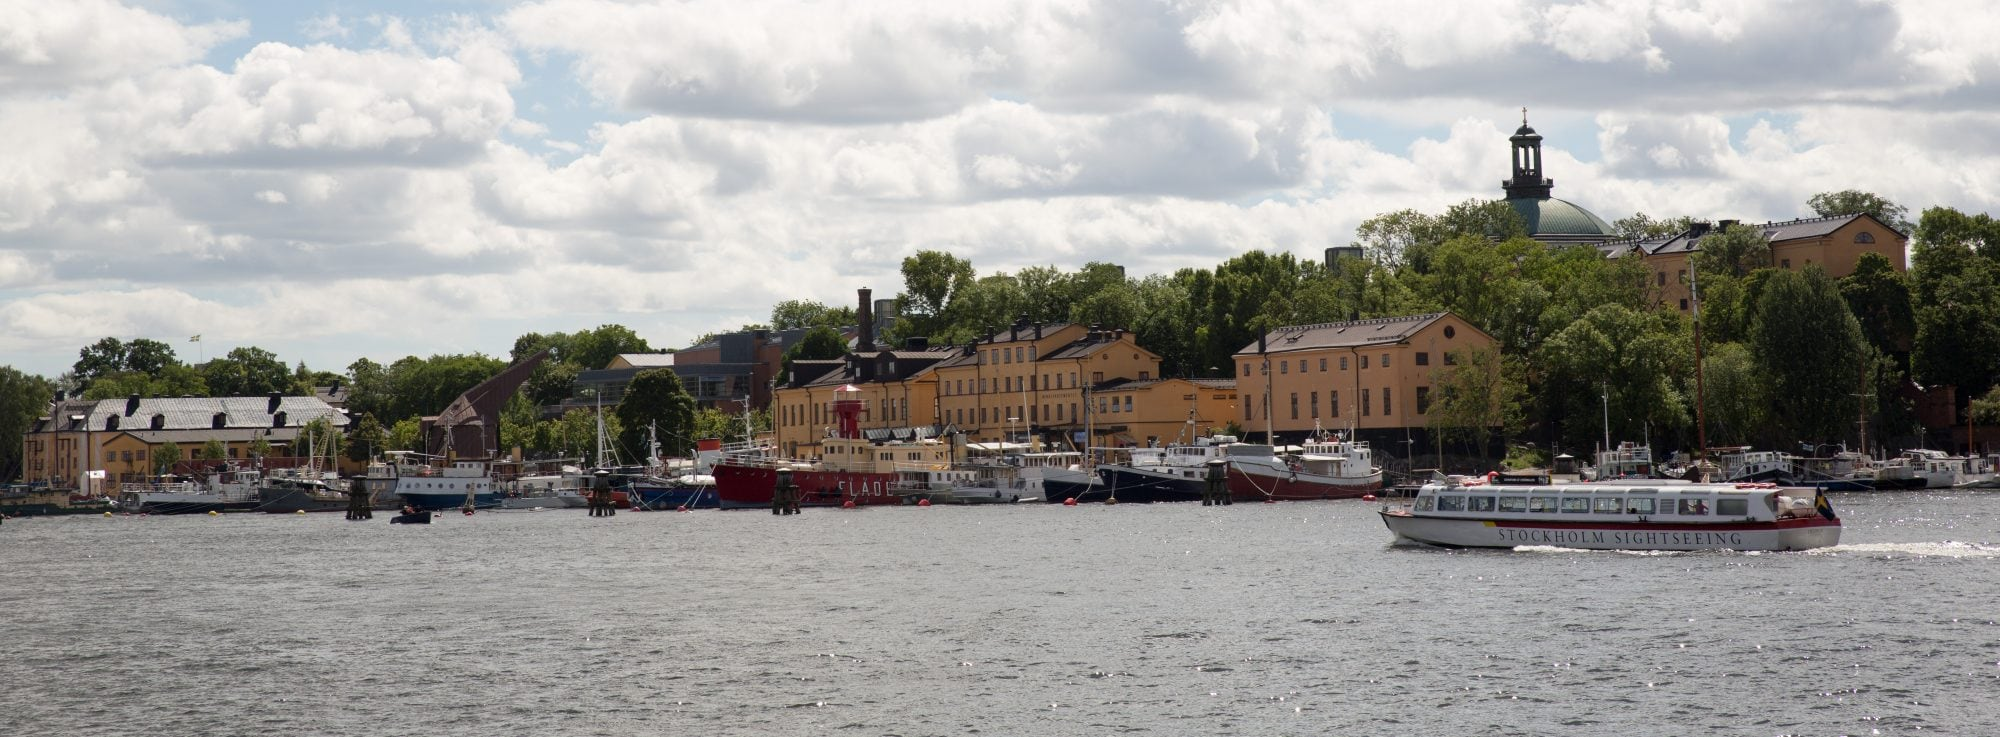 7 Great Things To Do In Stockholm, Sweden